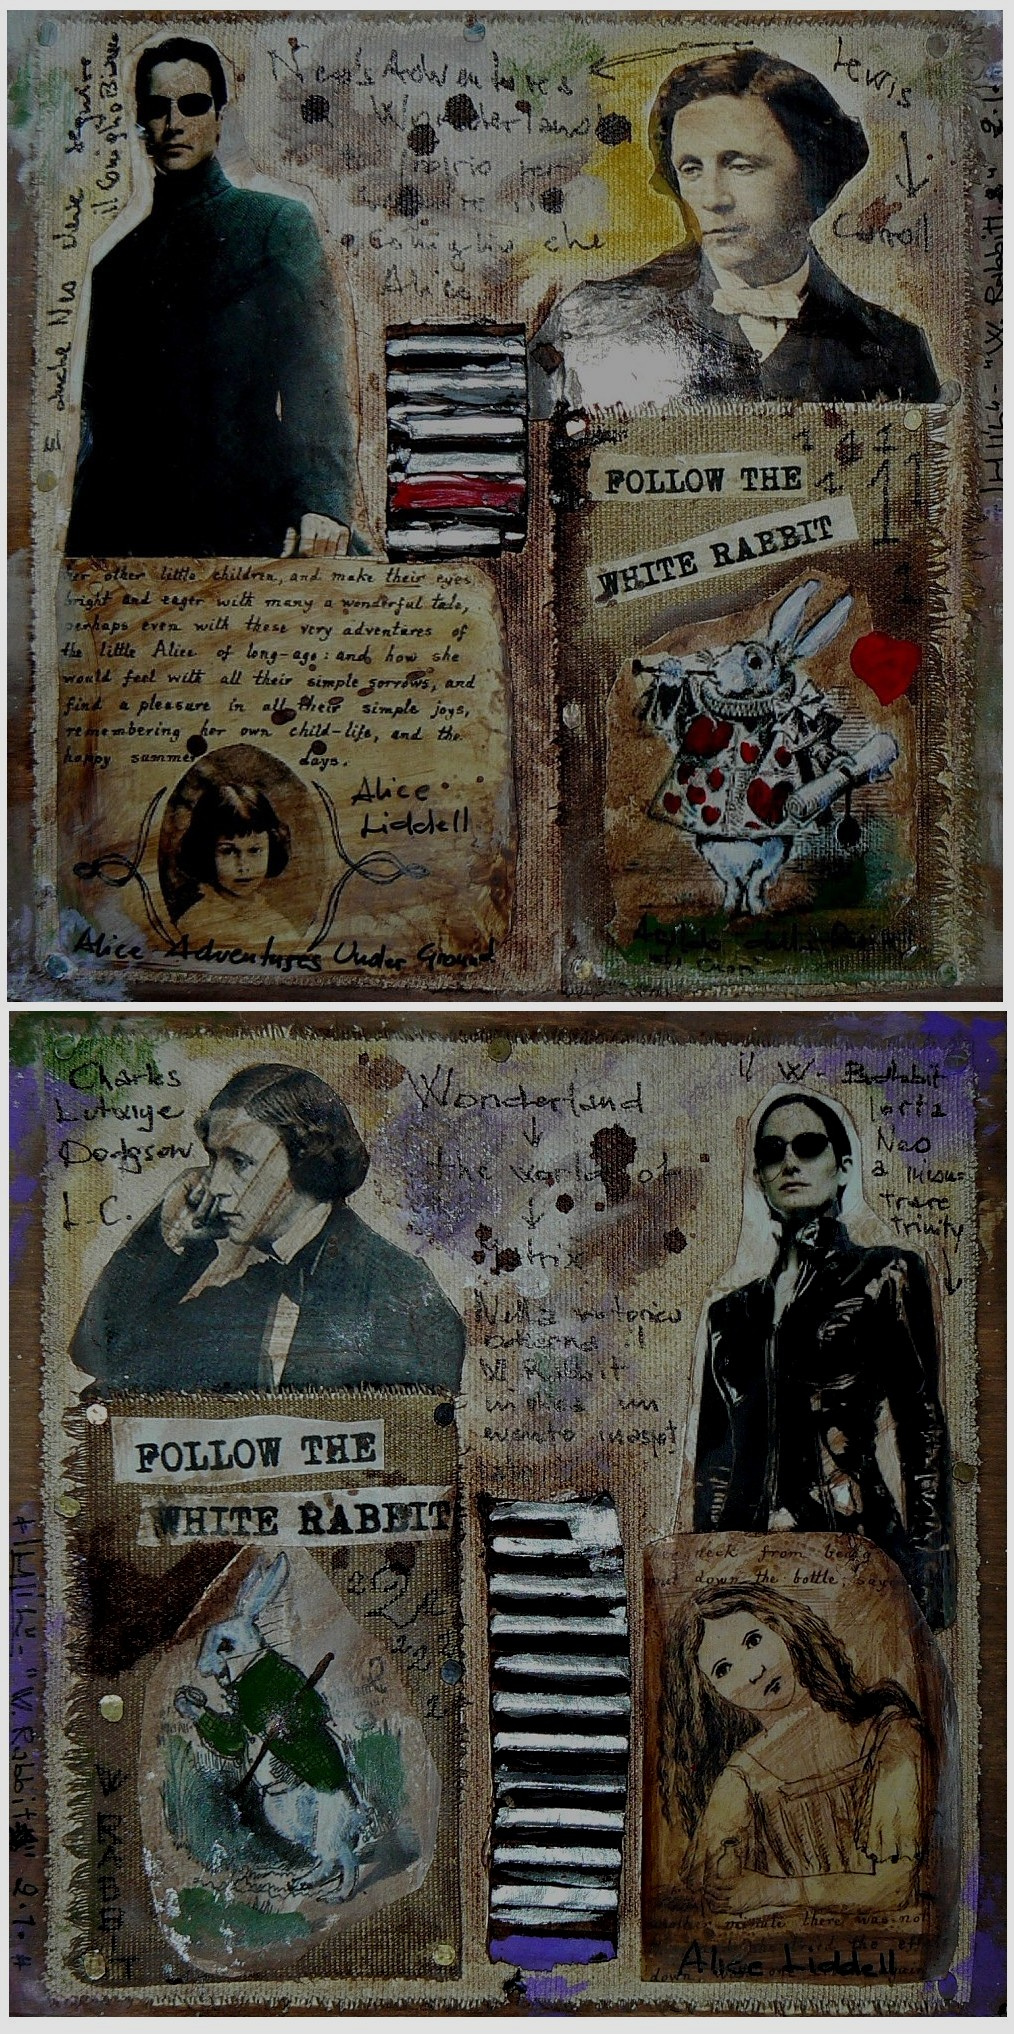 FOLLOW THW WHITE RABBIT (DIPTYCH)